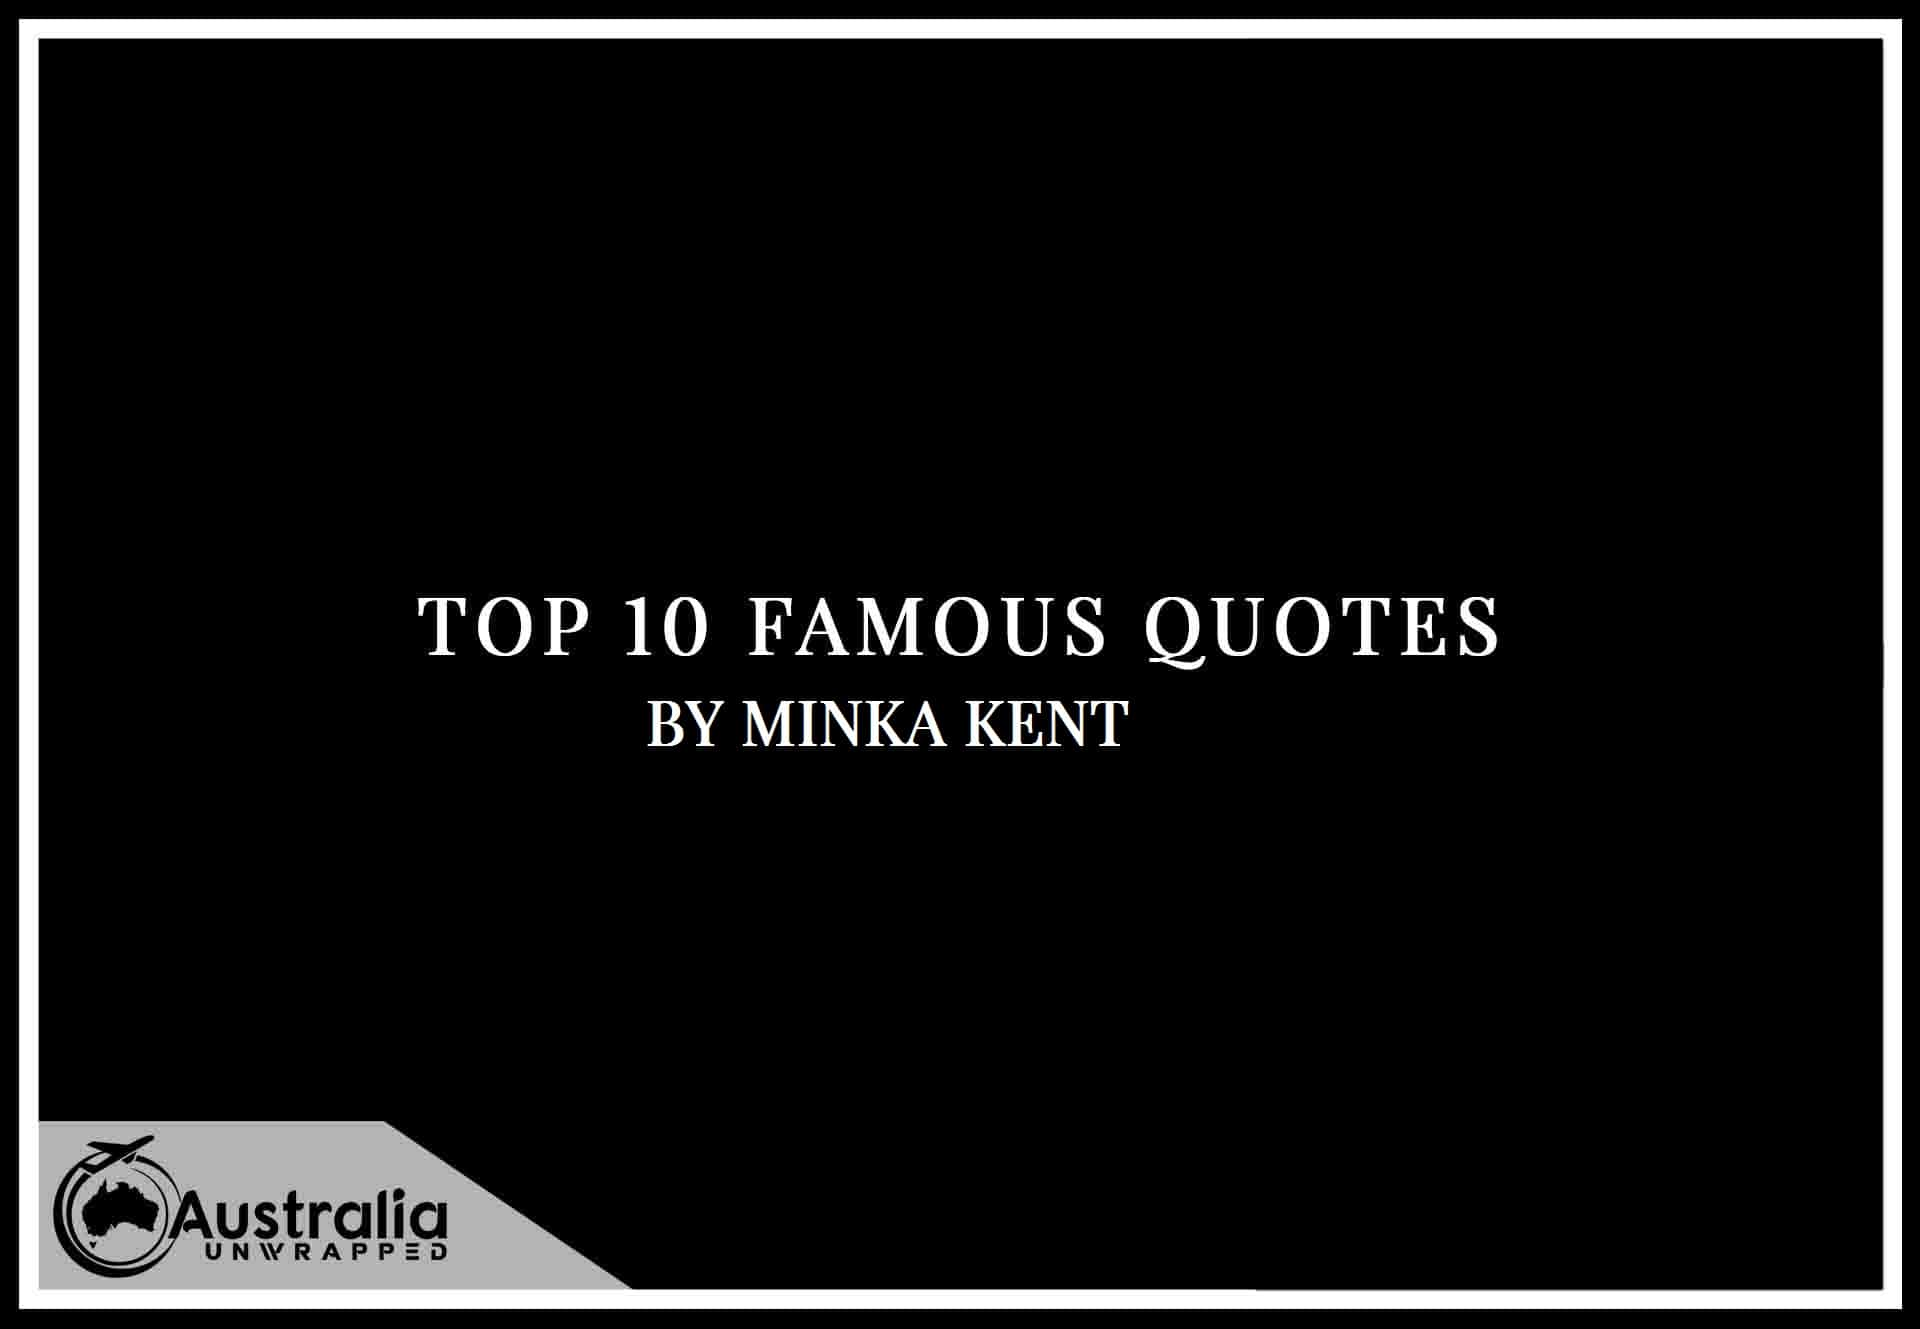 Minka Kent's Top 10 Popular and Famous Quotes